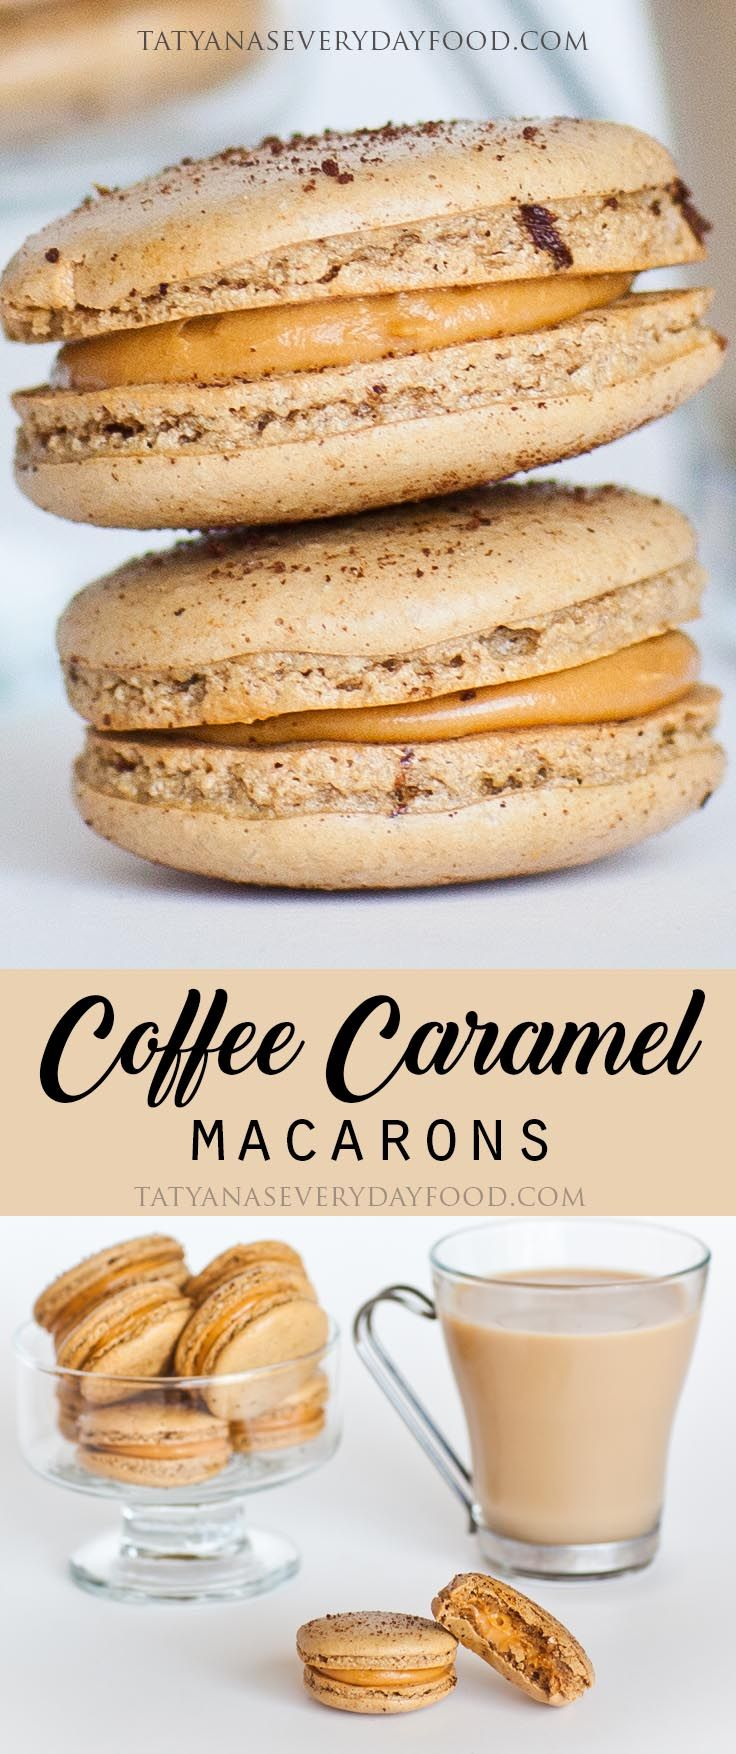 Coffee and salted caramel have come together for the best kind of dessert! These coffee macaron cookies are simply heavenly! My macarons start with a coffee-flavored macaron shell, sprinkled with more coffee and filled with the most delicious salted caramel frosting. This is my all-time favorite macaron recipe! Whenever I make these, they're gone so […]